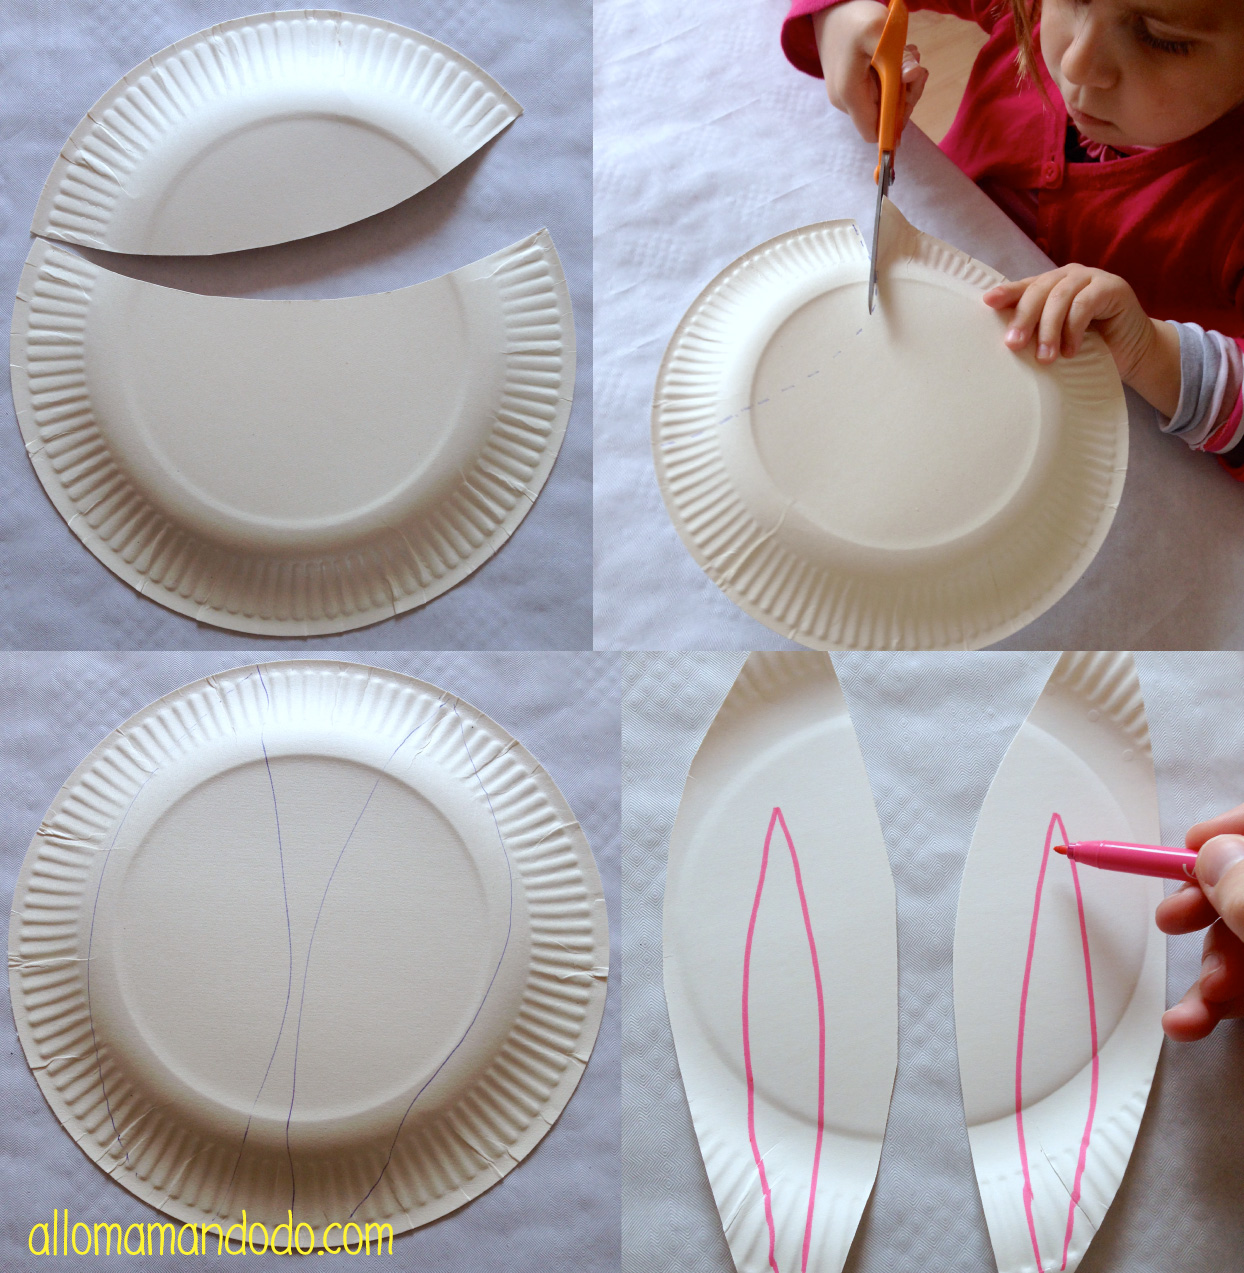 diy petit sac lapin de p ques avec des assiettes en carton allo maman dodo. Black Bedroom Furniture Sets. Home Design Ideas